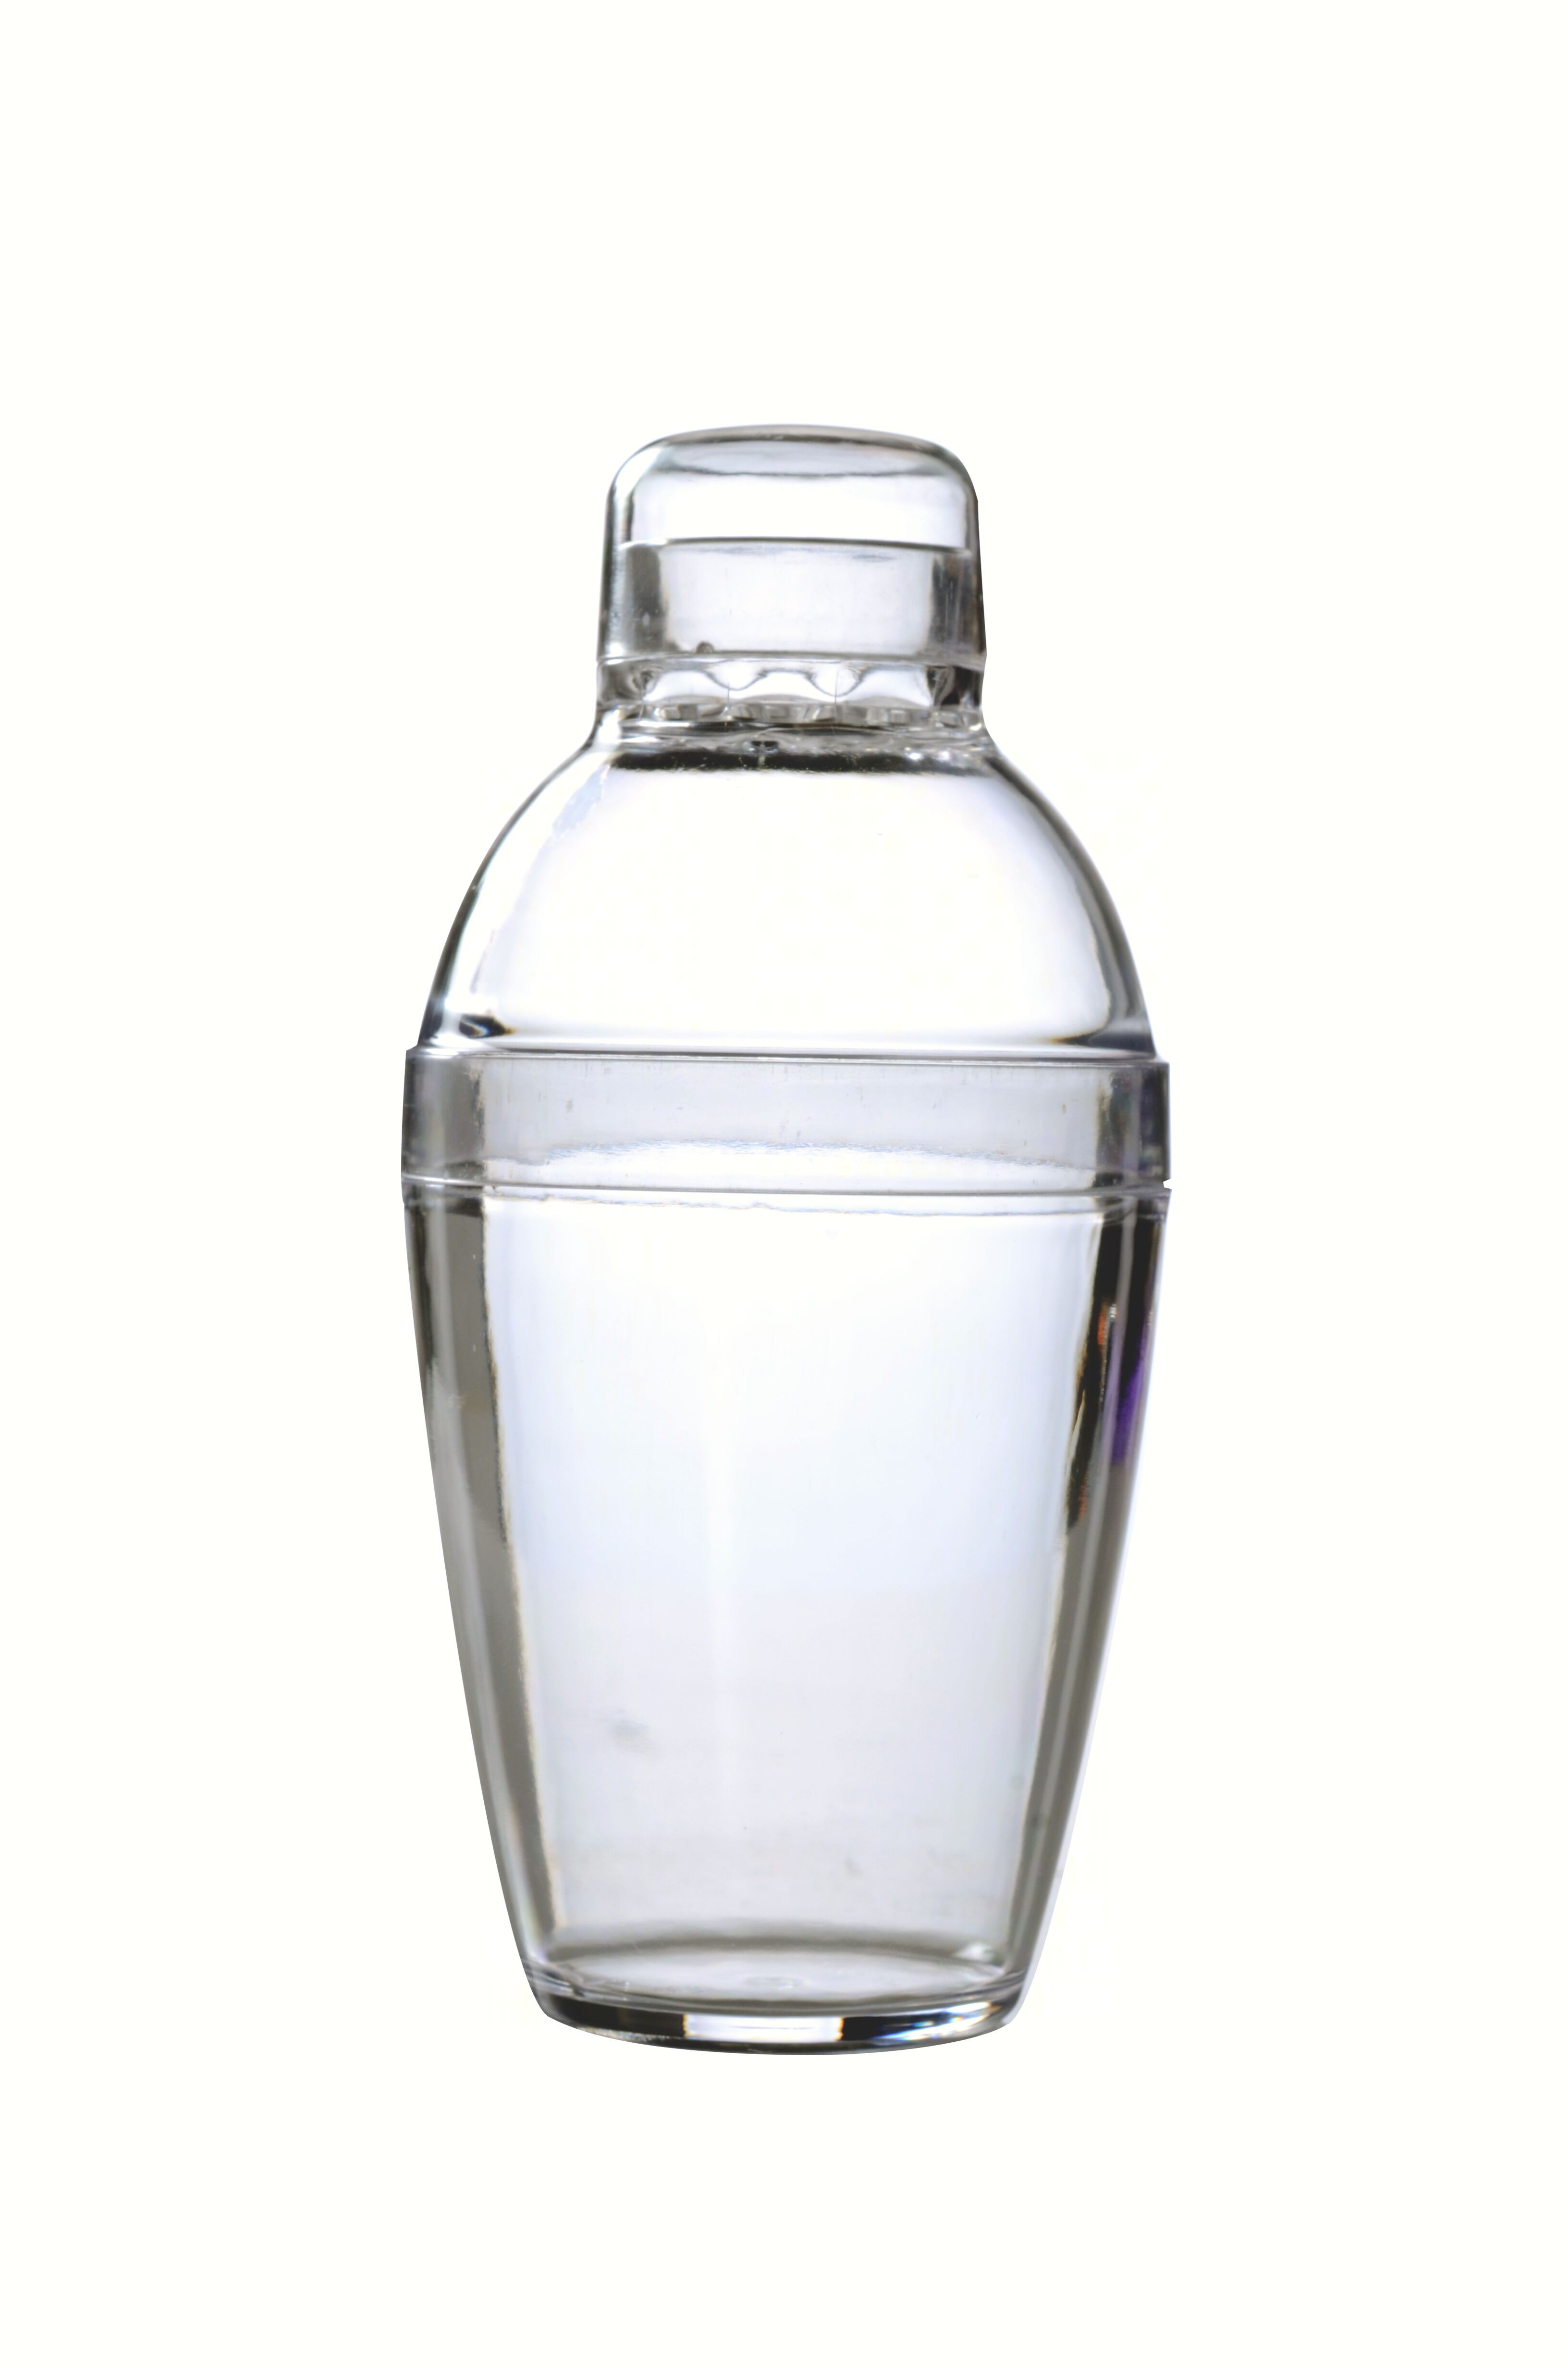 7 oz Cocktail Shaker Clear